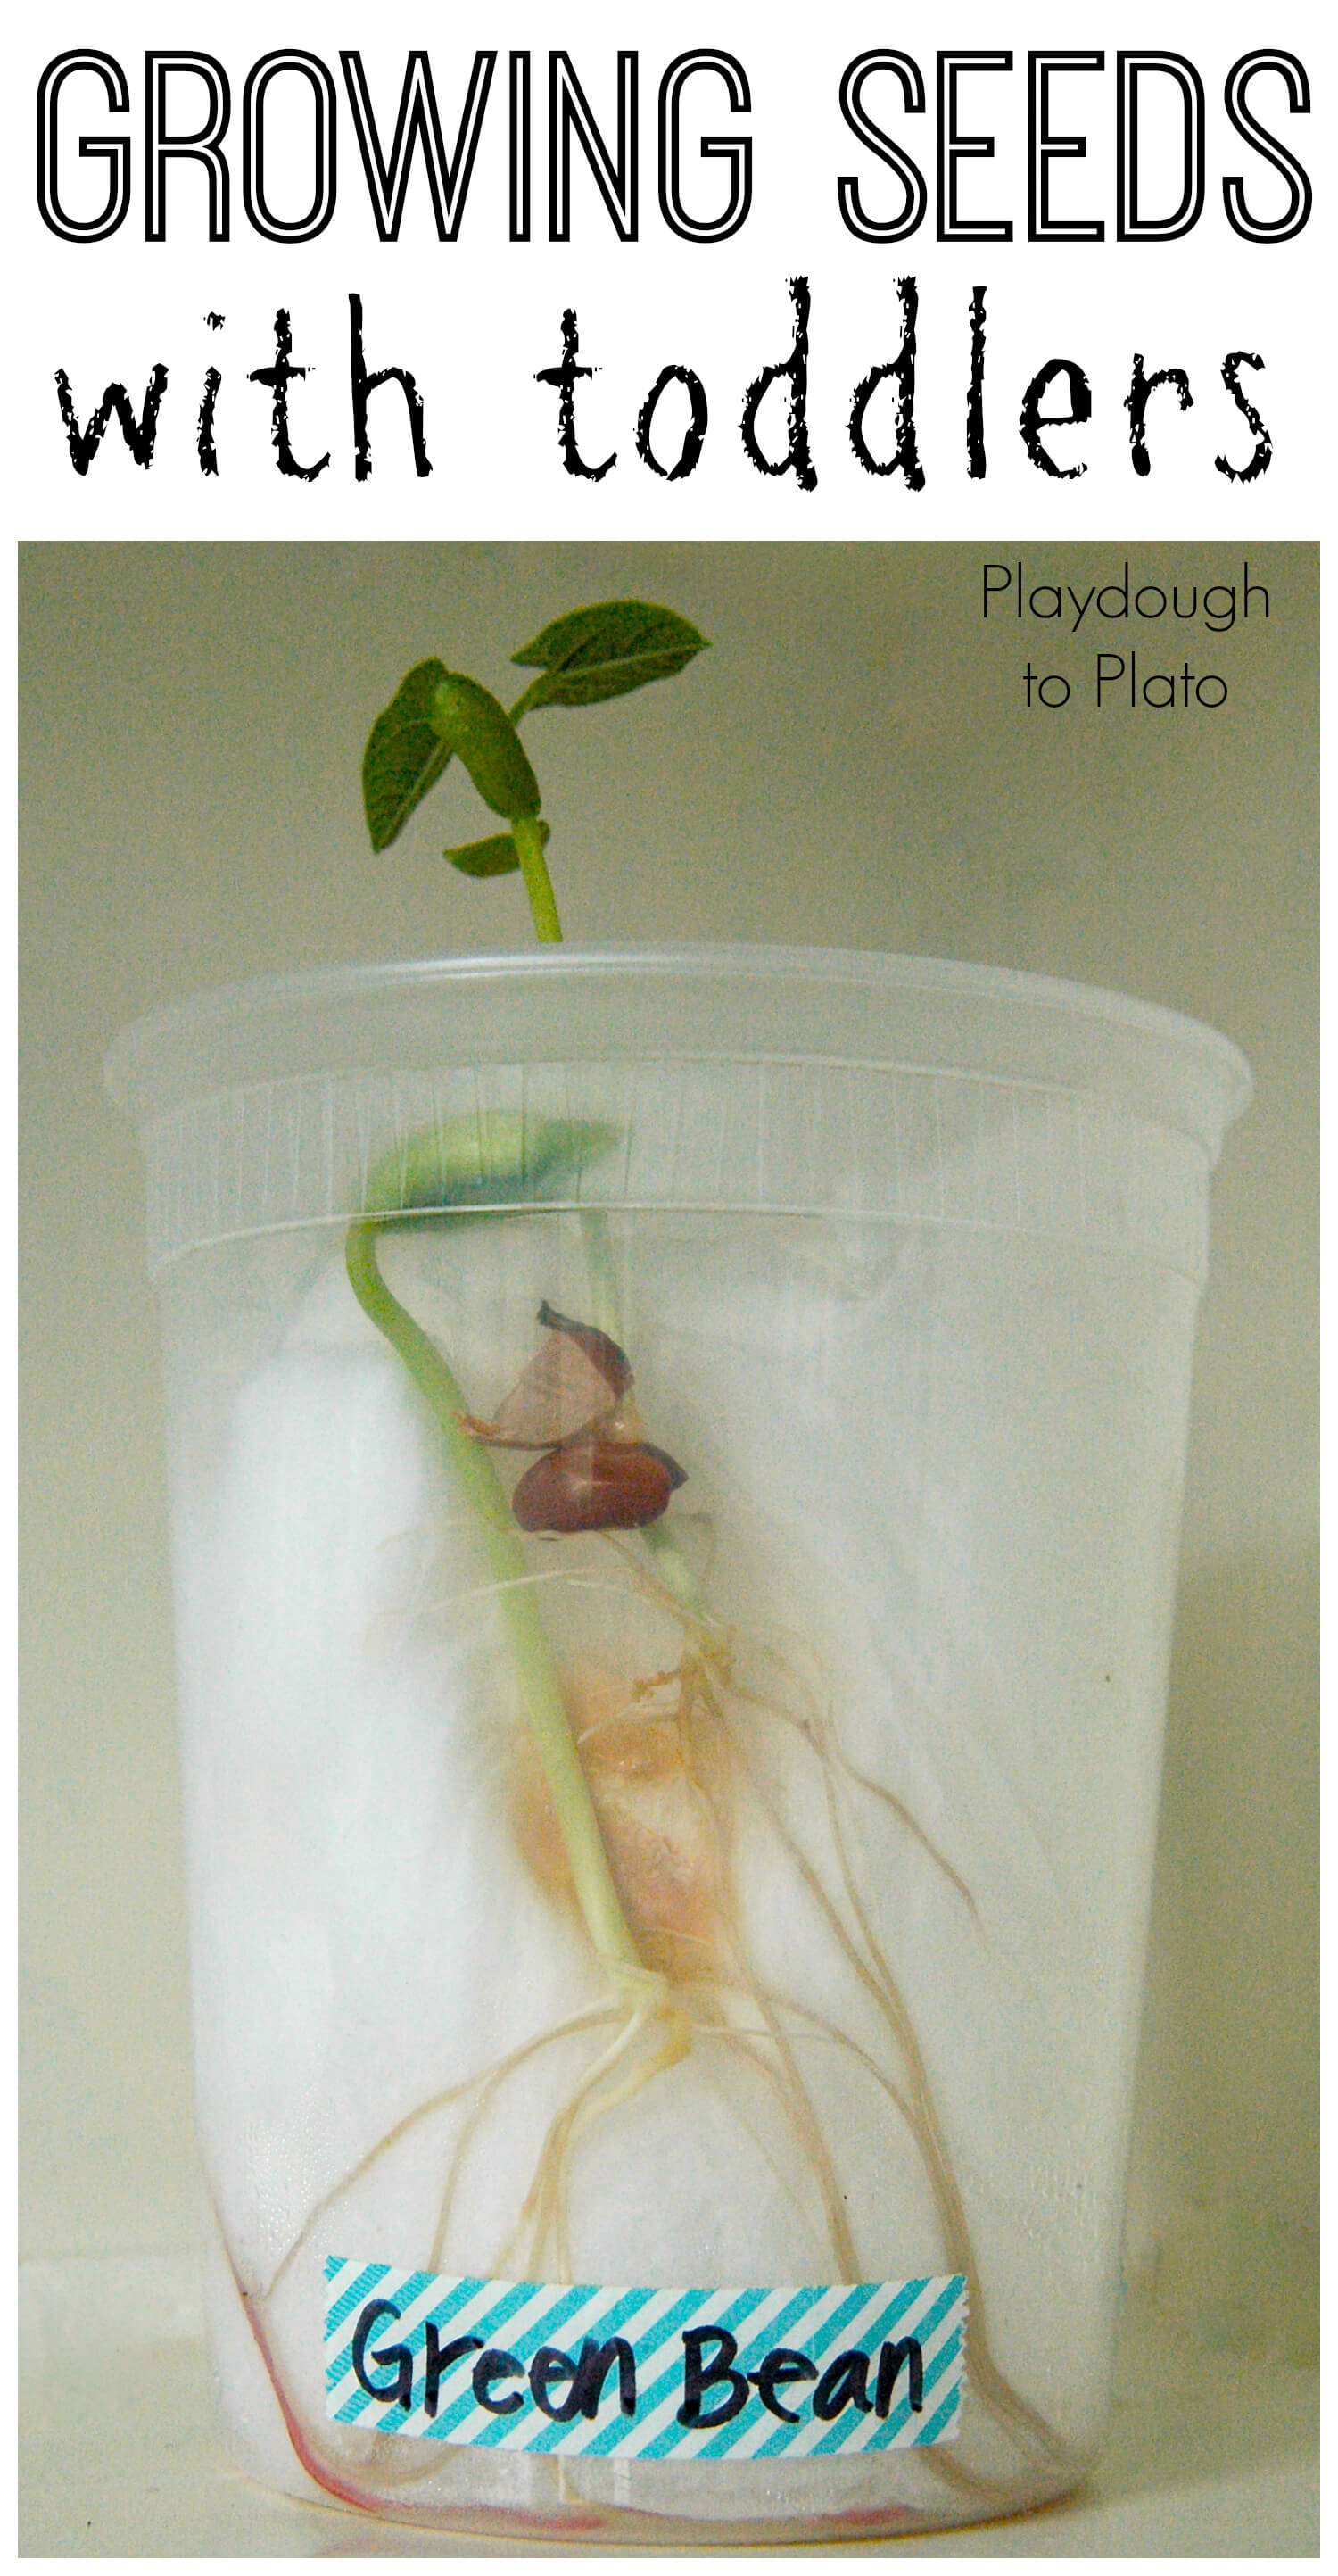 Growing Seeds With Toddlers